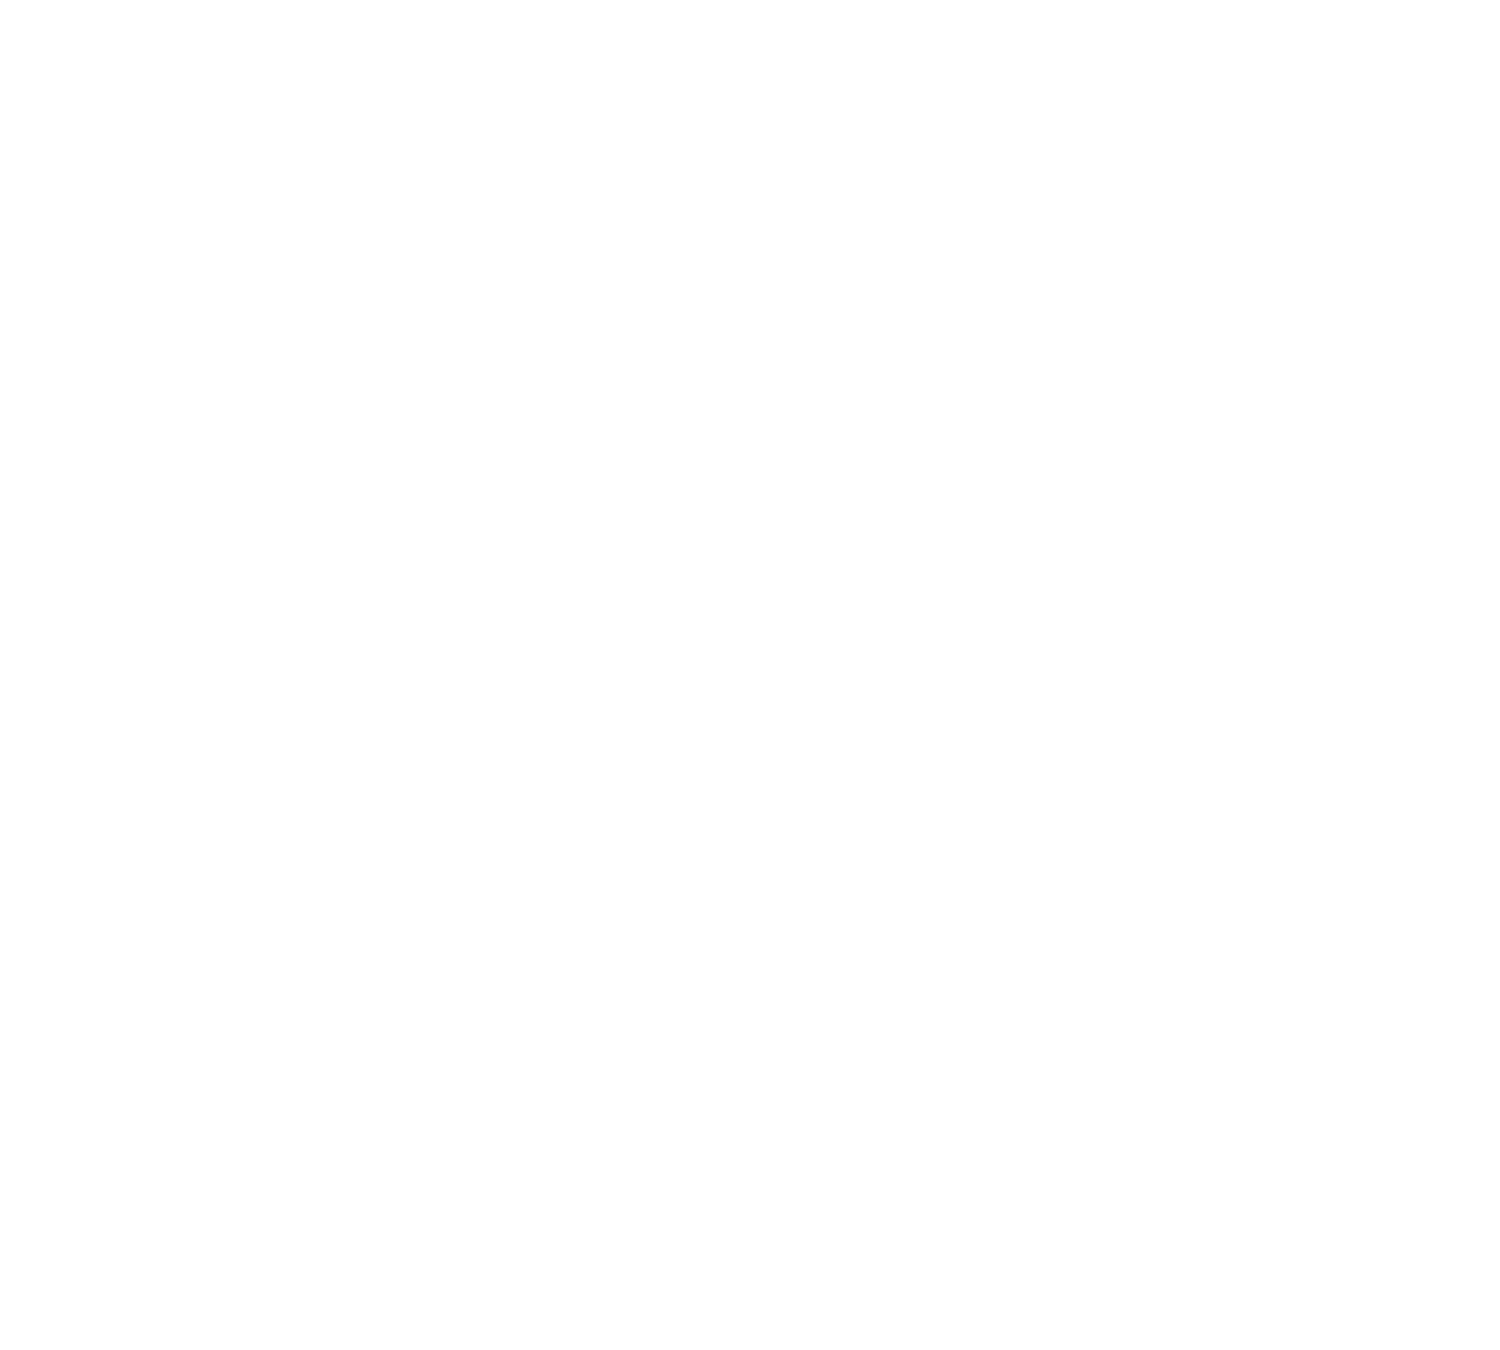 Wayne Center for the Arts